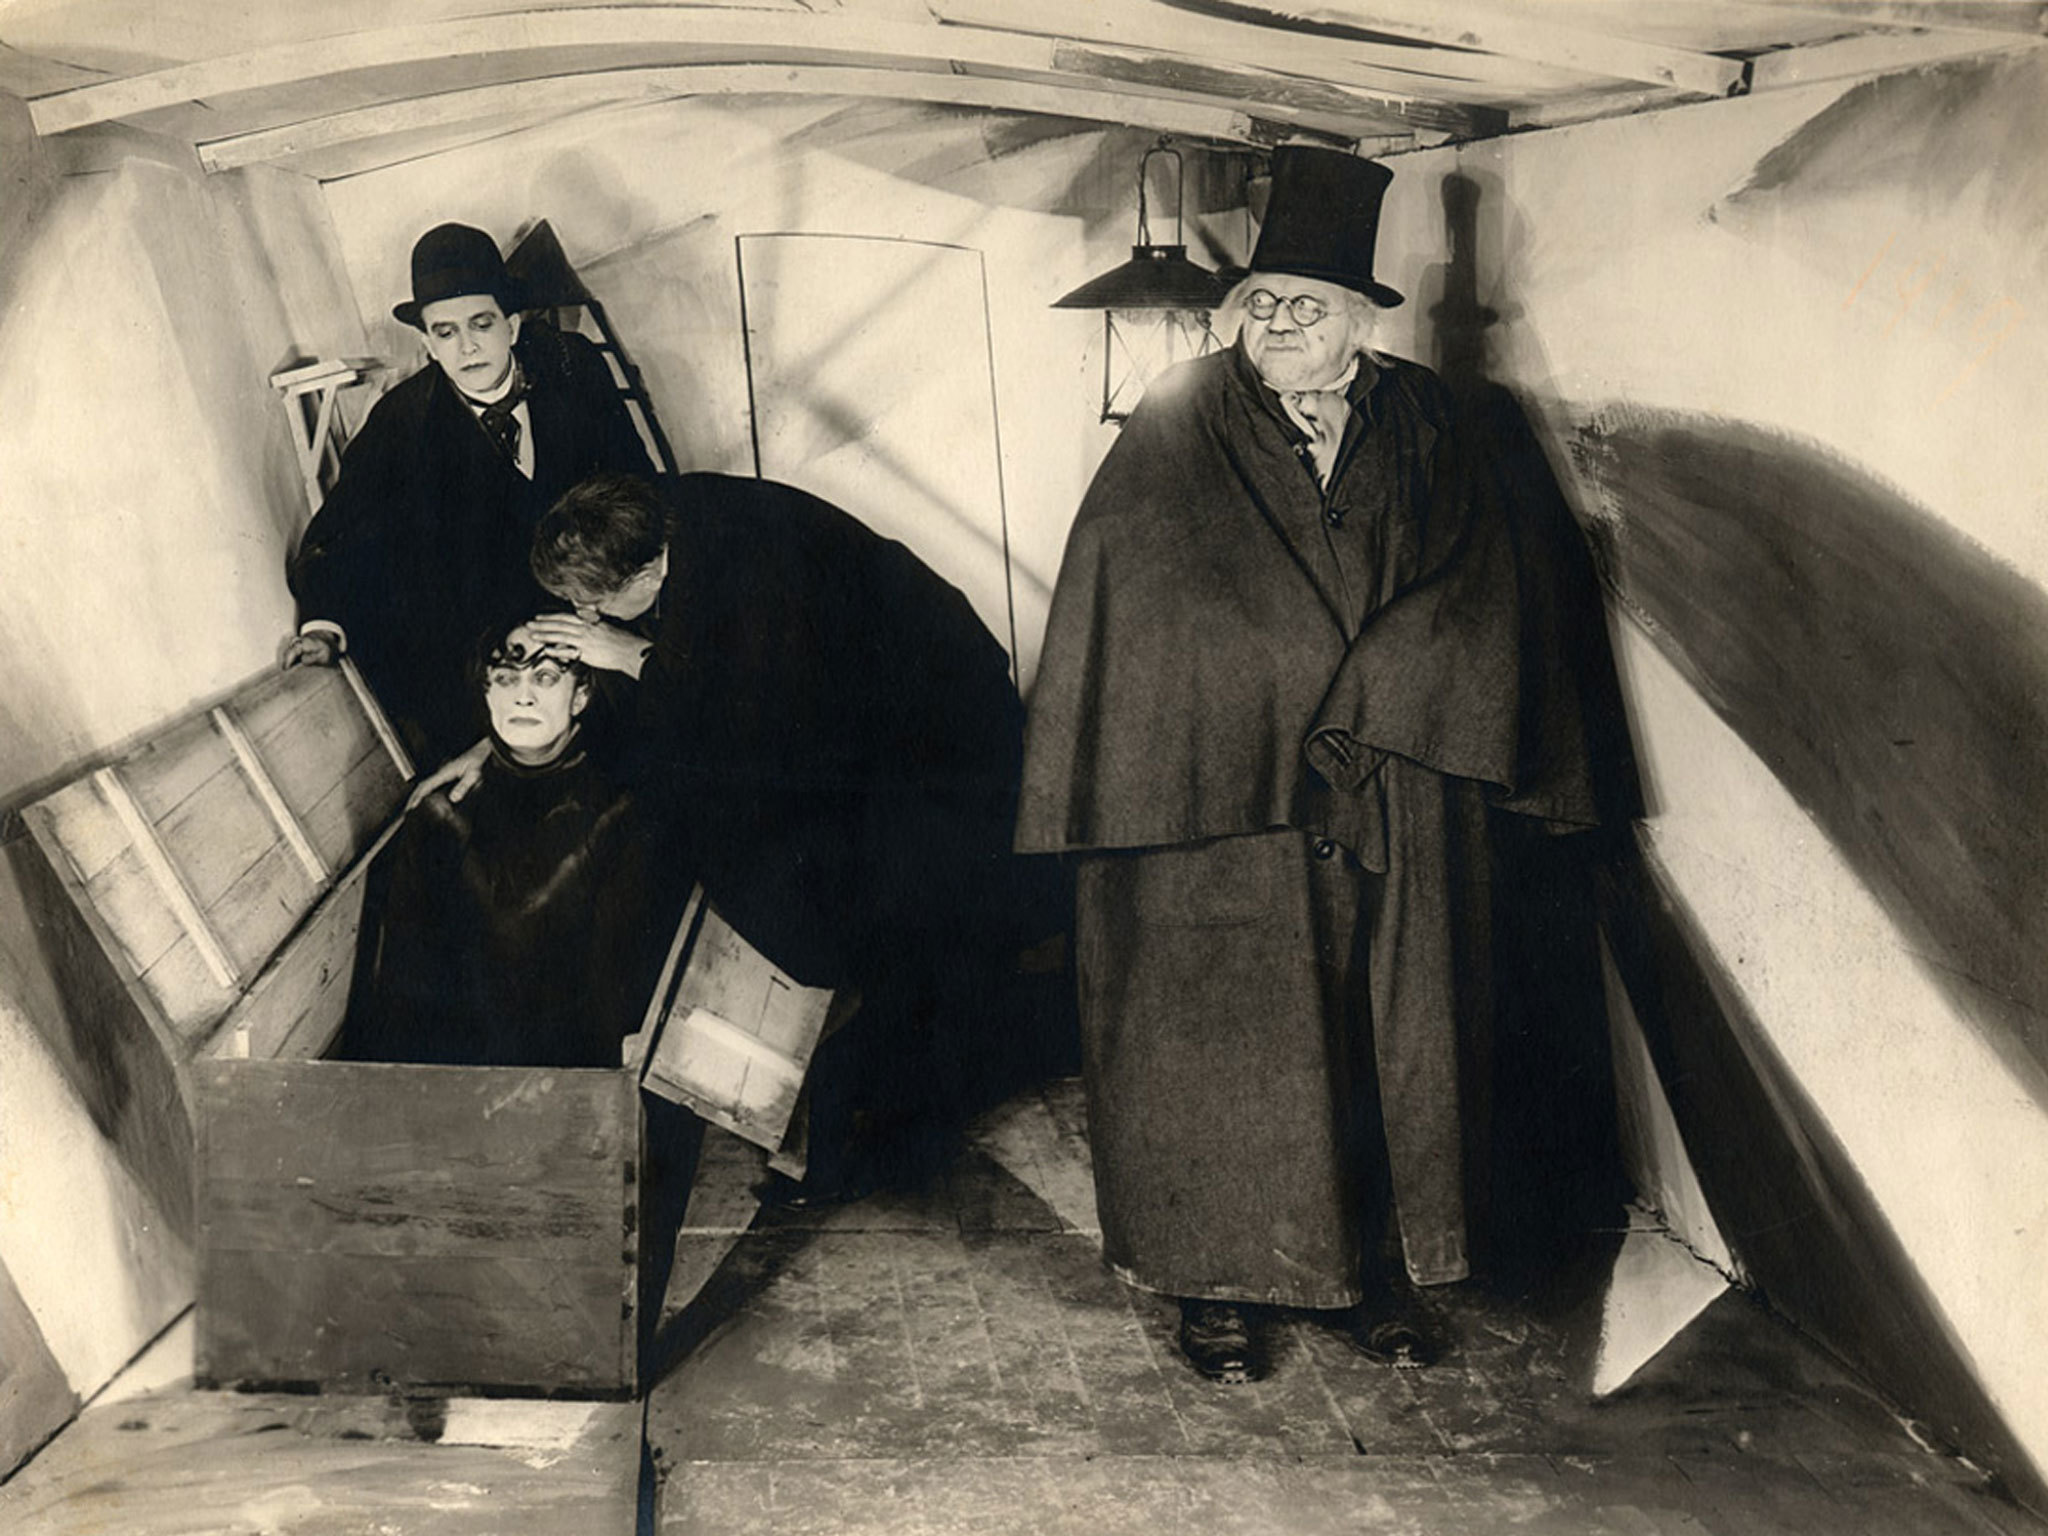 The 100 best horror films, horror movies, Cabinet of Dr Caligari